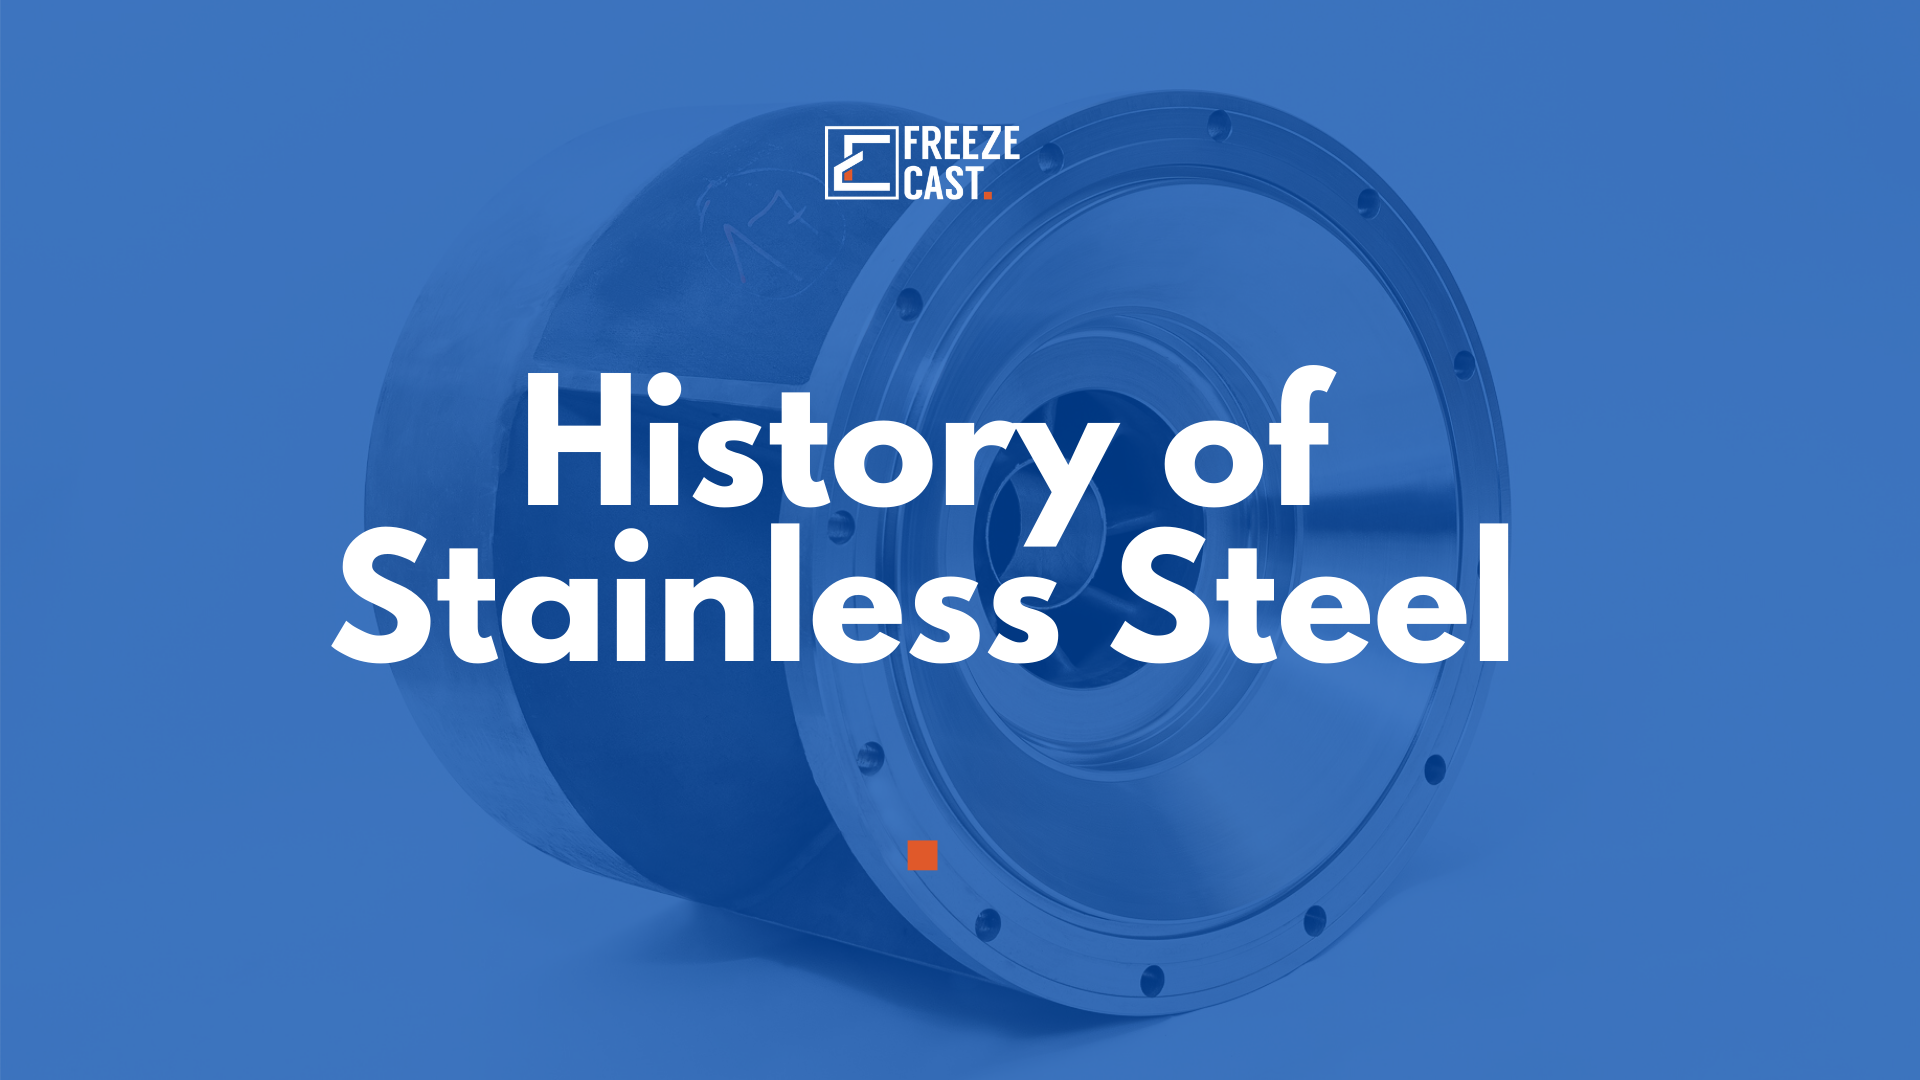 History of Stainless Steel